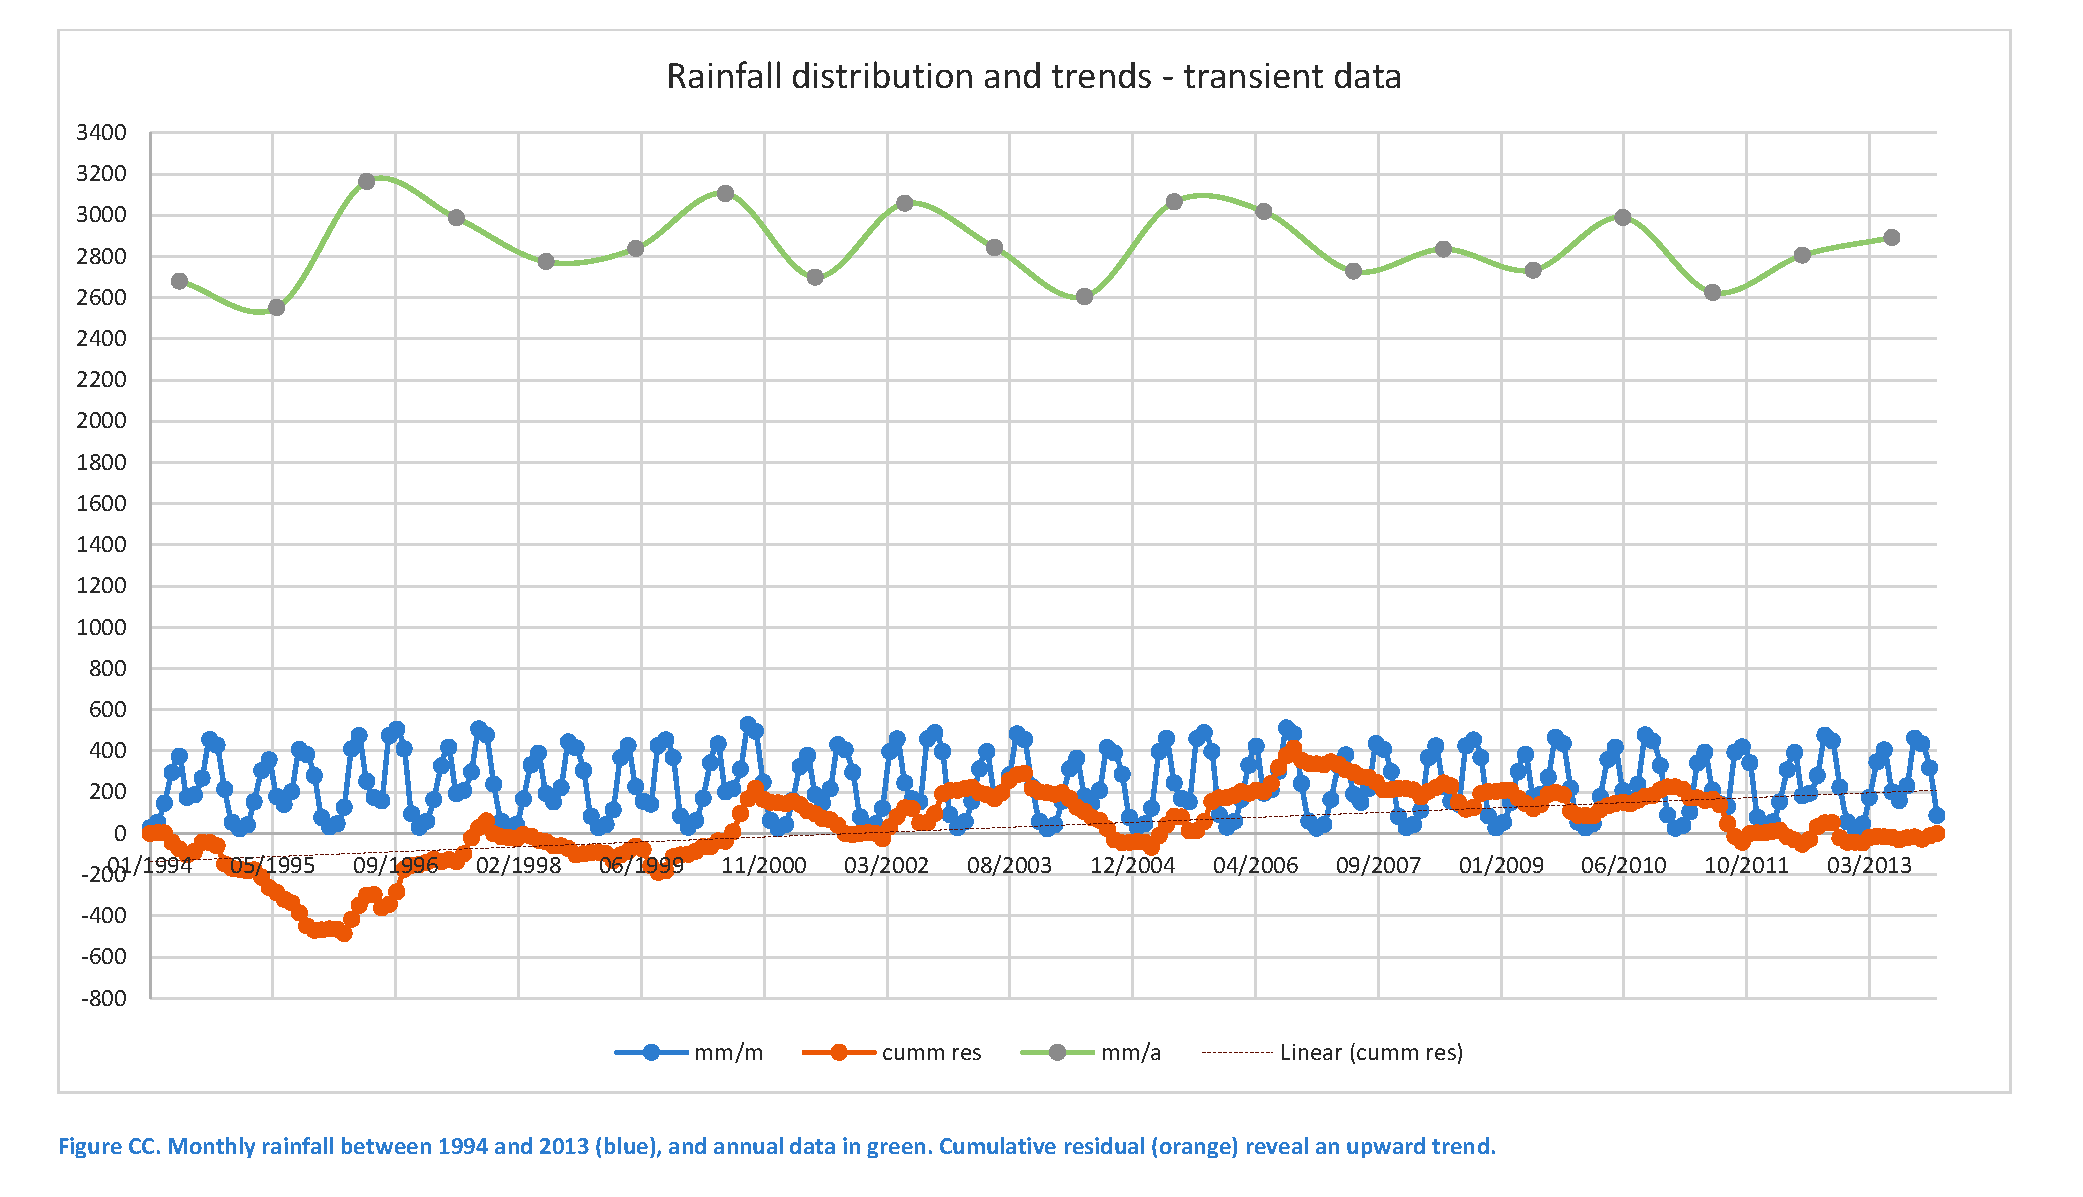 Cumulative resid. rainfall